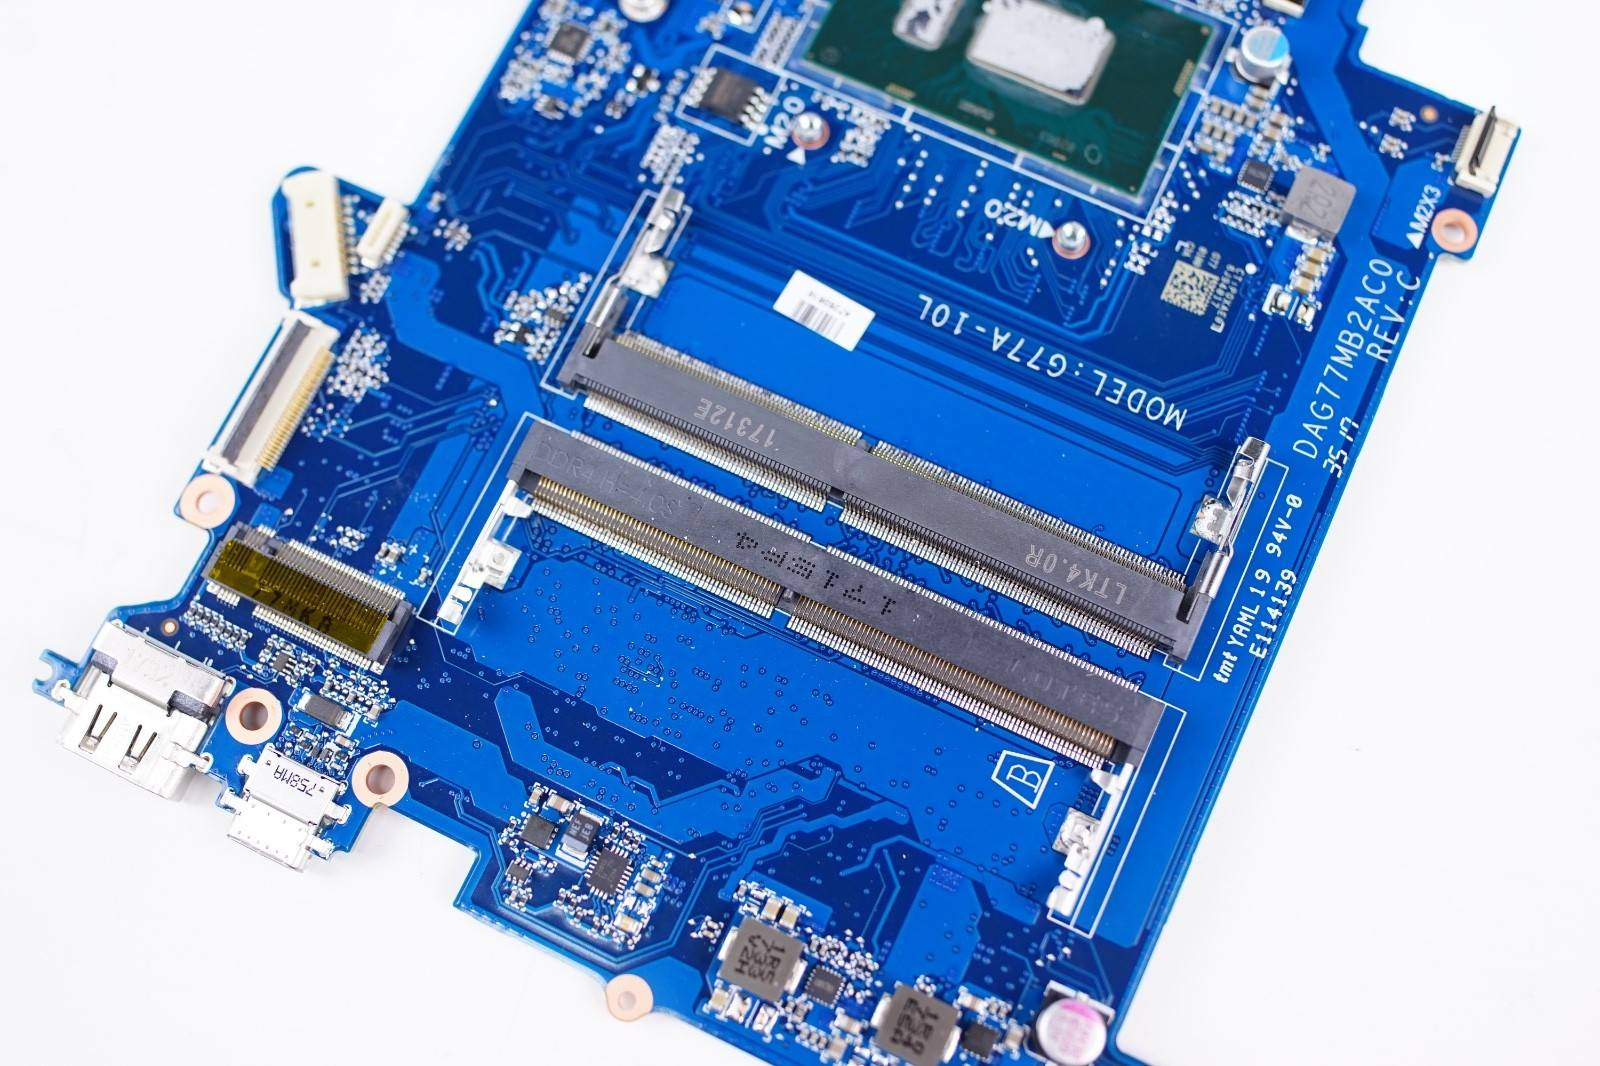 Installing SSD in Laptop possible? - CPUs, Motherboards, and